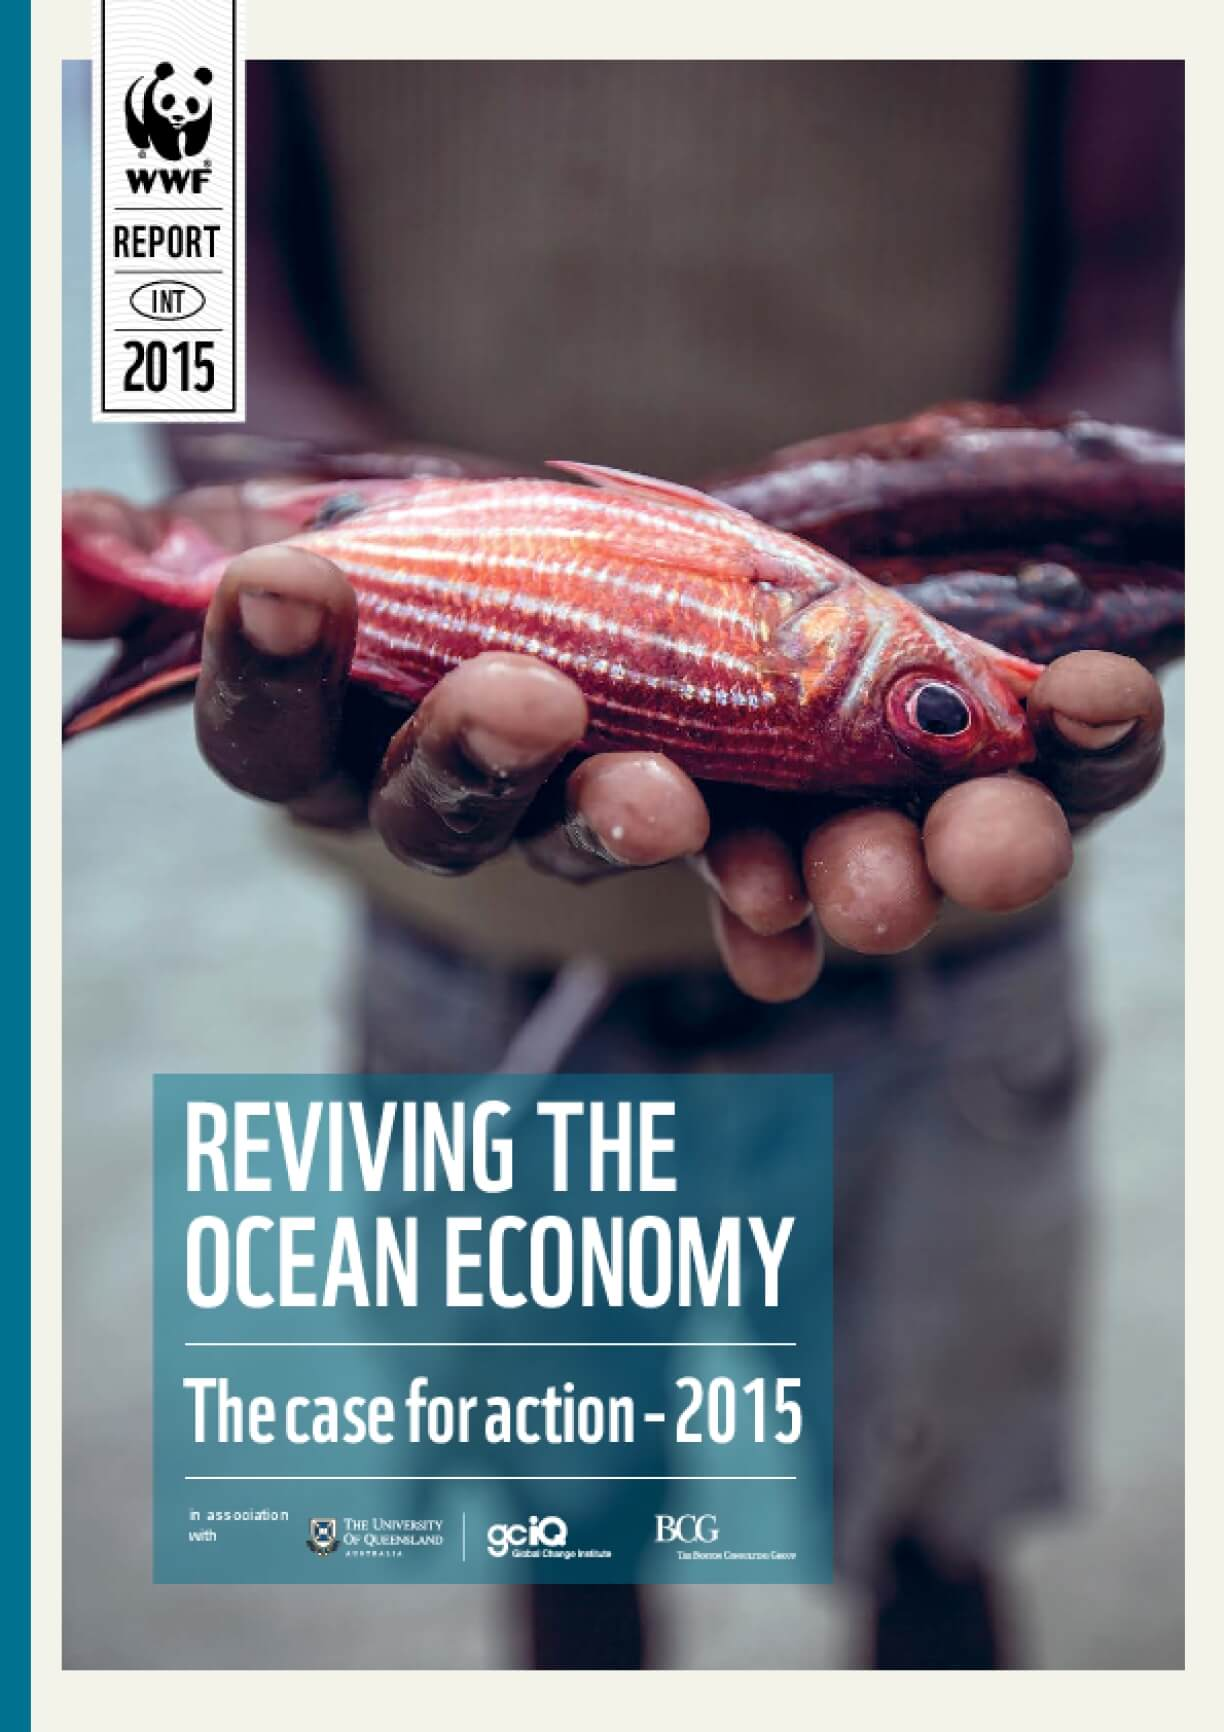 Reviving the Oceans Economy: The Case for Action, 2015